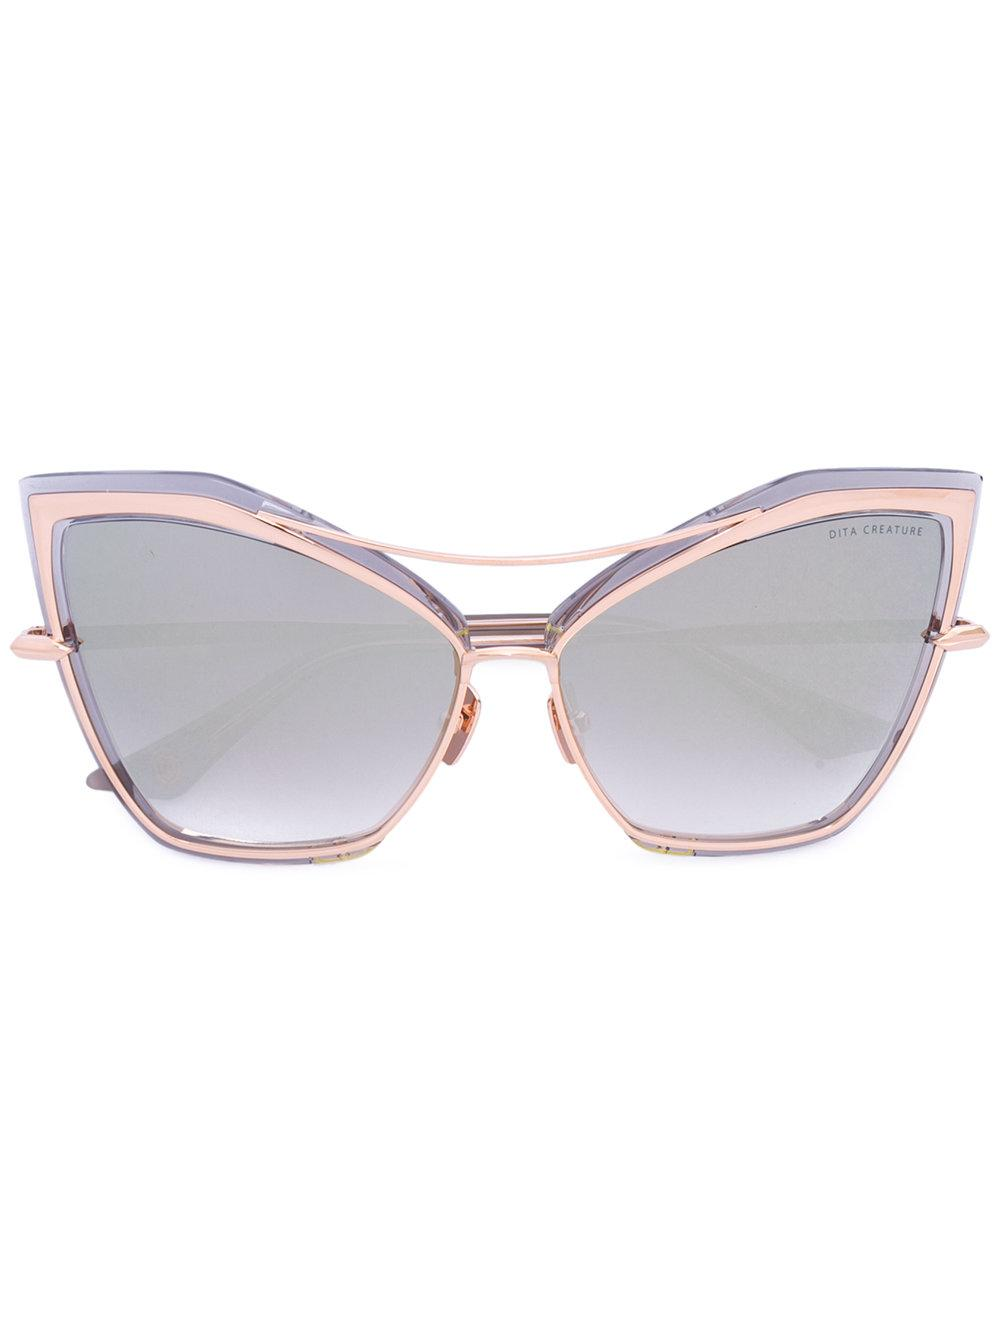 Lyst Dita Eyewear Creature Sunglasses In Gray